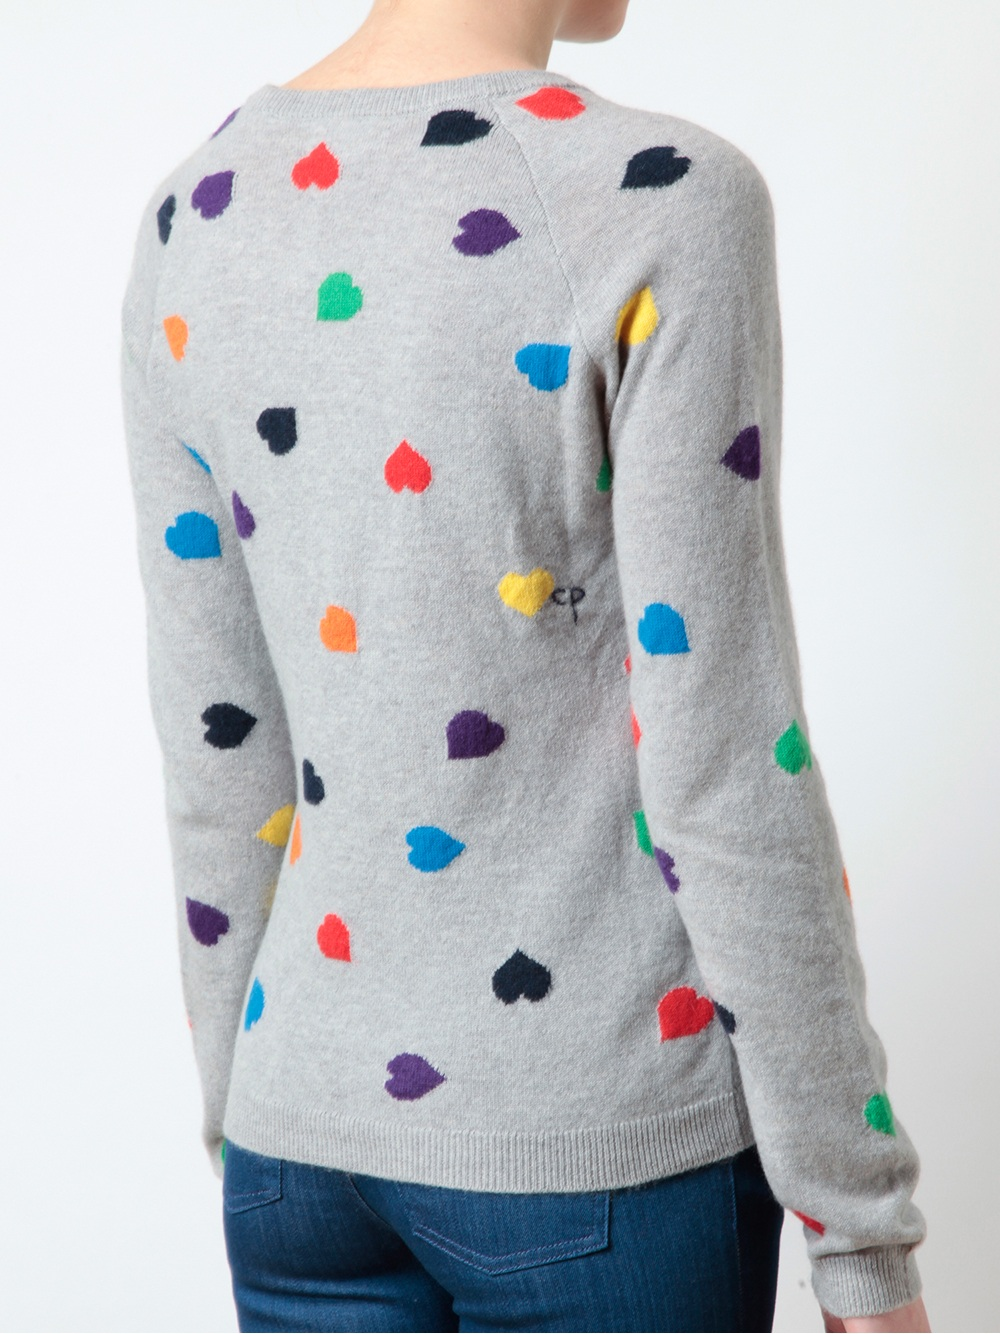 Chinti & parker Heart Patterned Cashmere Jumper in Gray | Lyst